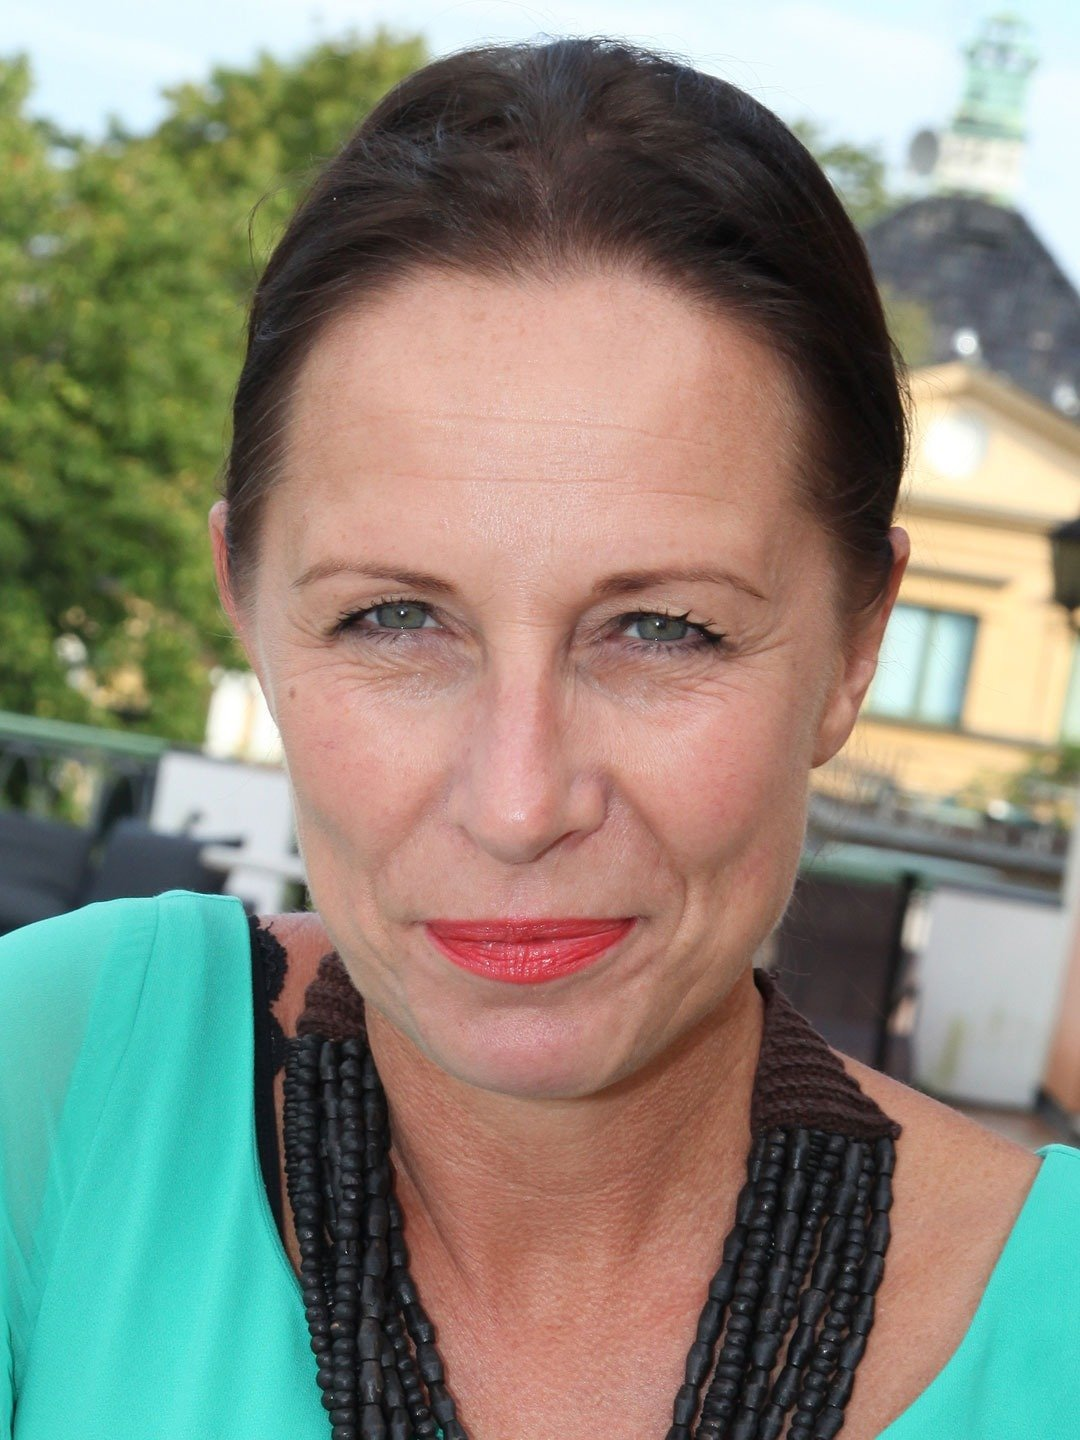 Karin Mattisson